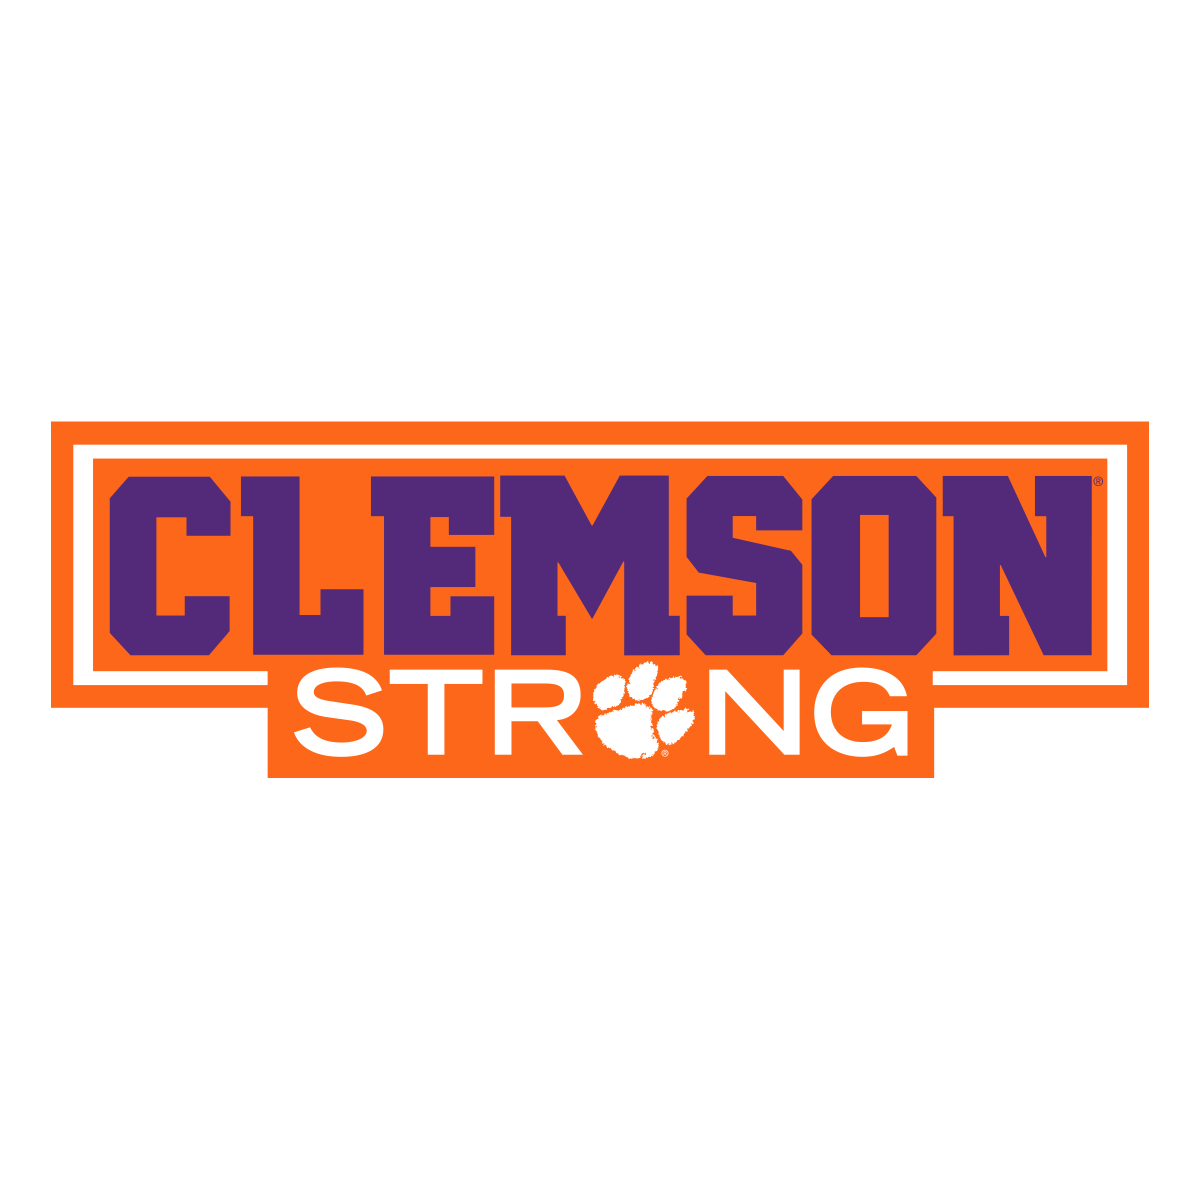 "6"" Clemson Strong Decal - Mr. Knickerbocker"